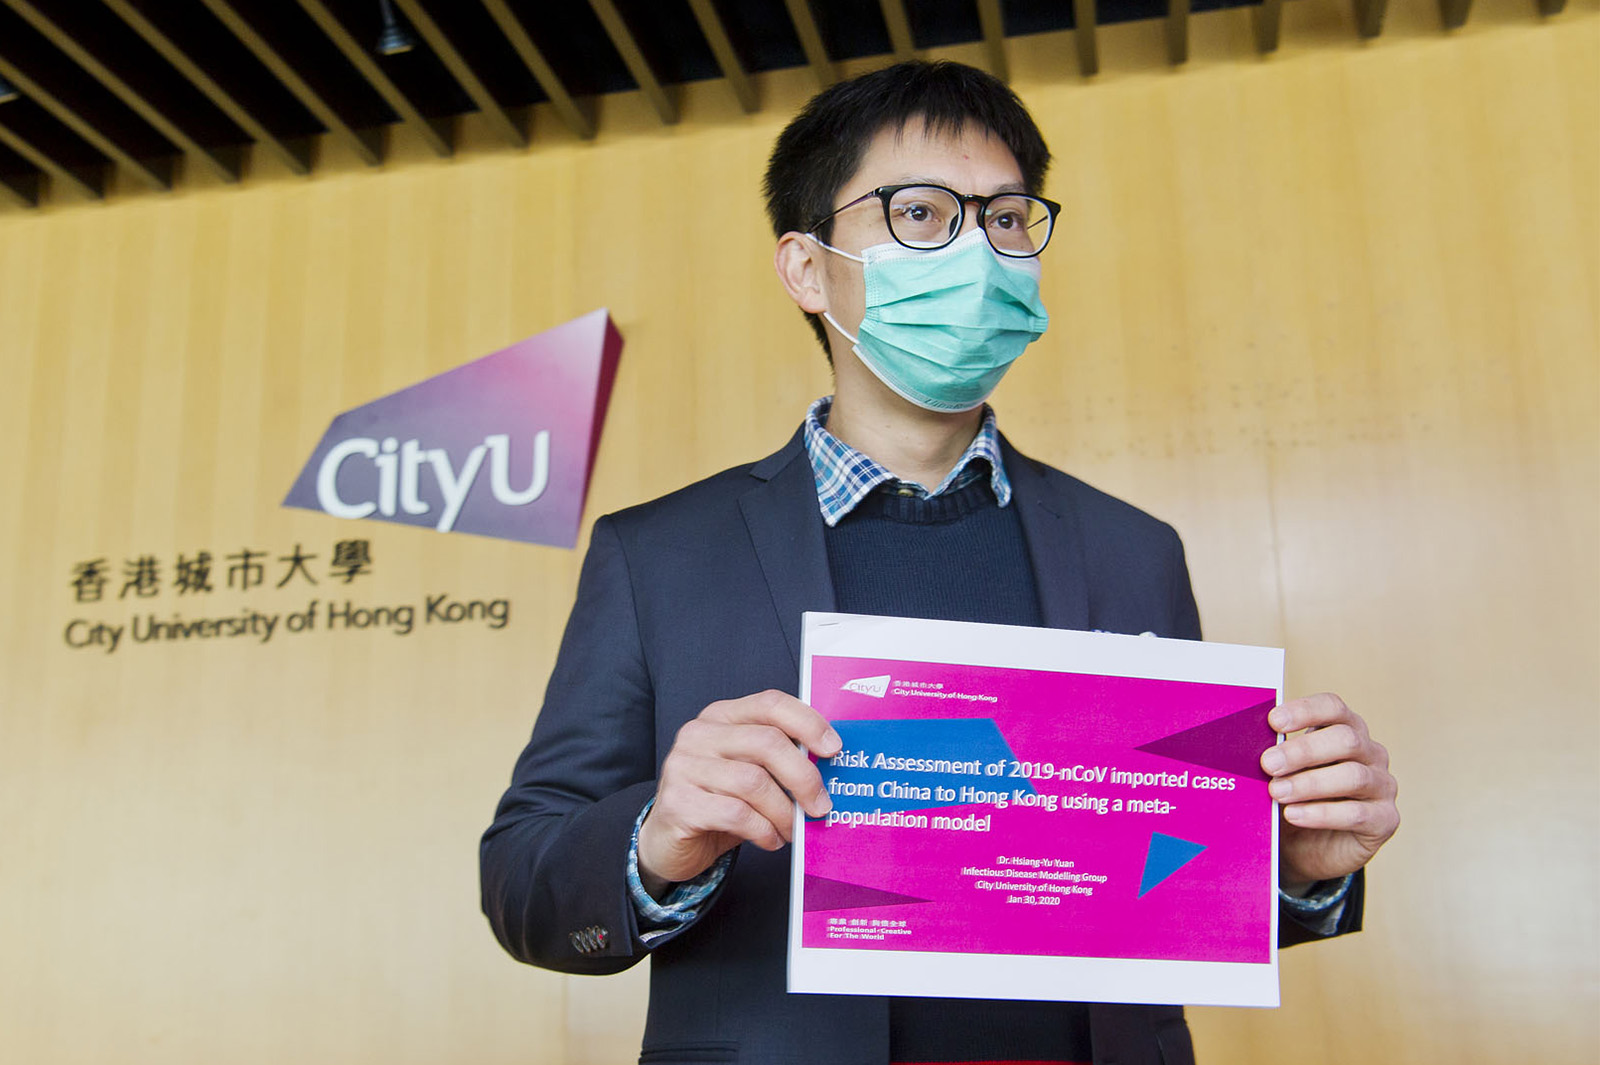 Dr Sean Yuan Hsiang-yu shared the research outcome on the risk of outbreaks of a novel coronavirus in local communities after the Chinese New Year holidays.